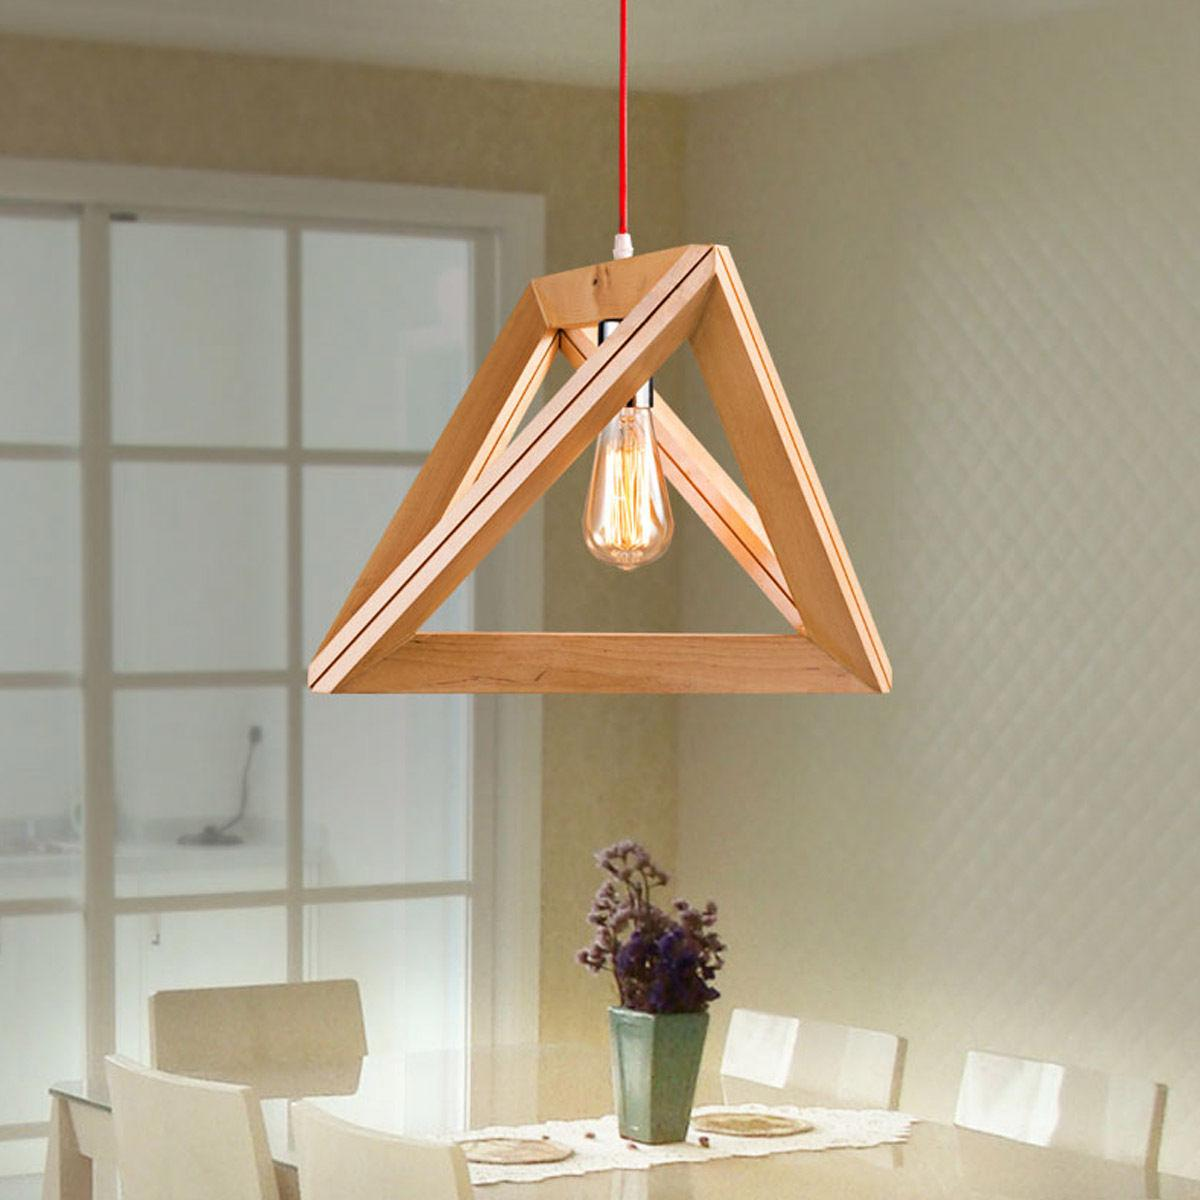 New modern art wooden ceiling light pendant lamp lighting light wood new modern art wooden ceiling light pendant lamp lighting light wood chandelier online with 14208piece on oilandwatchess store dhgate aloadofball Image collections